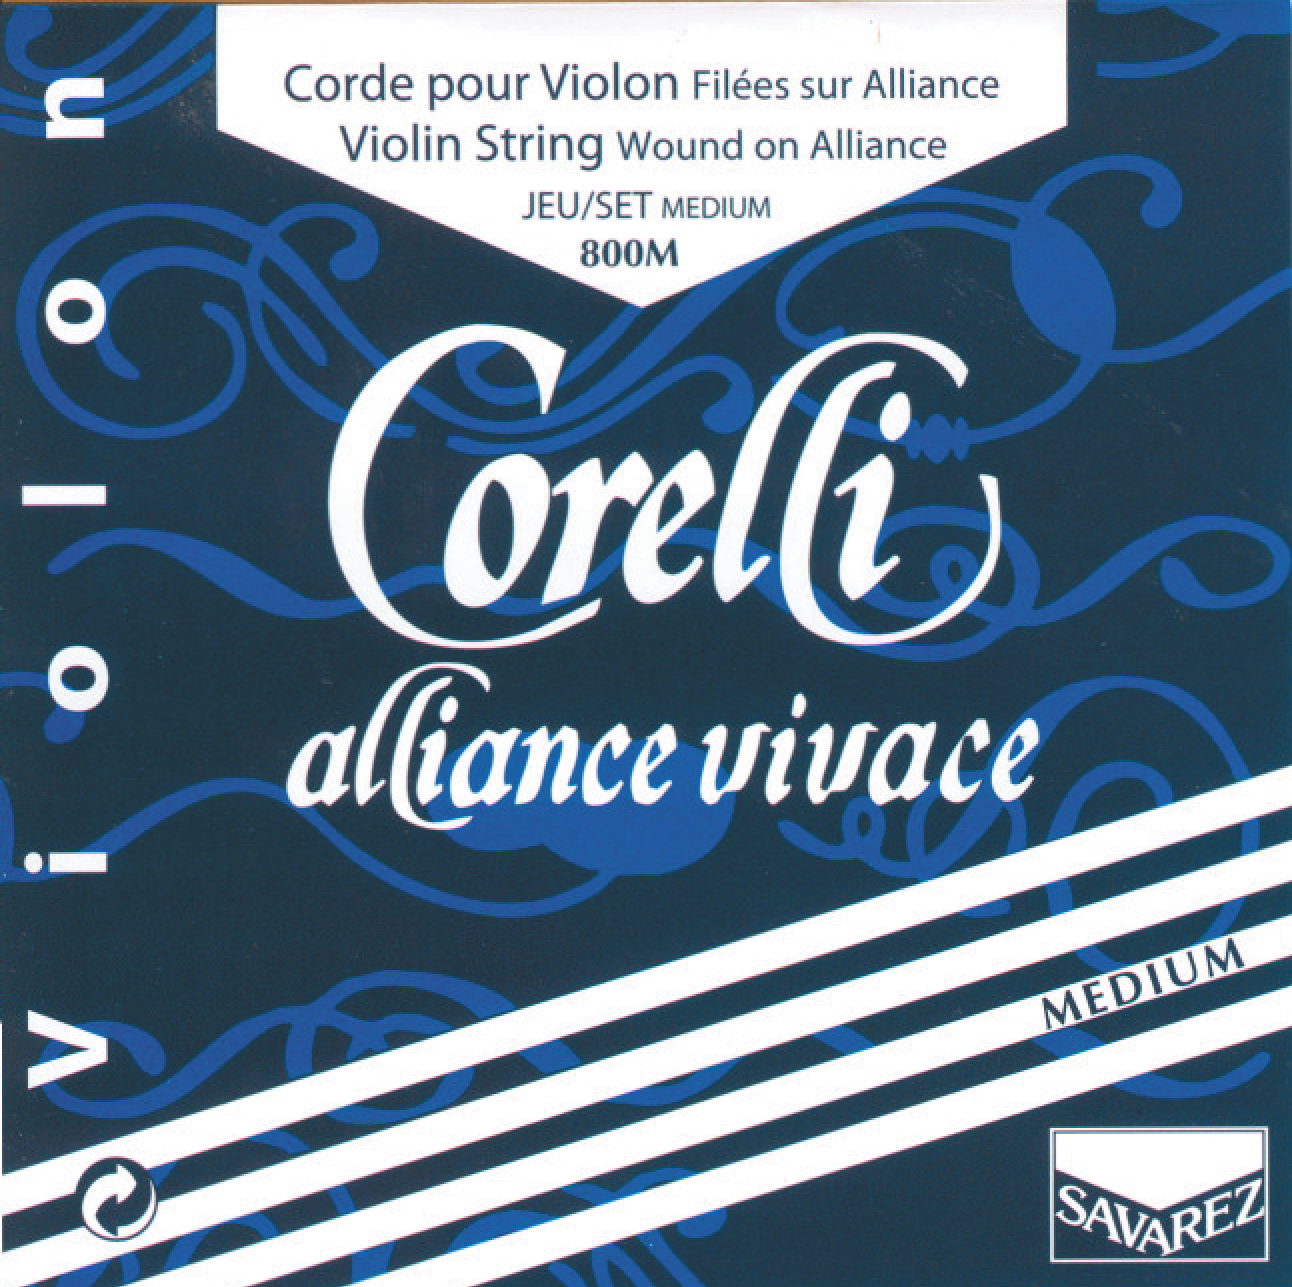 CORELLI ALLIANCE VIVACE MEDIUM 800M VIOLIN